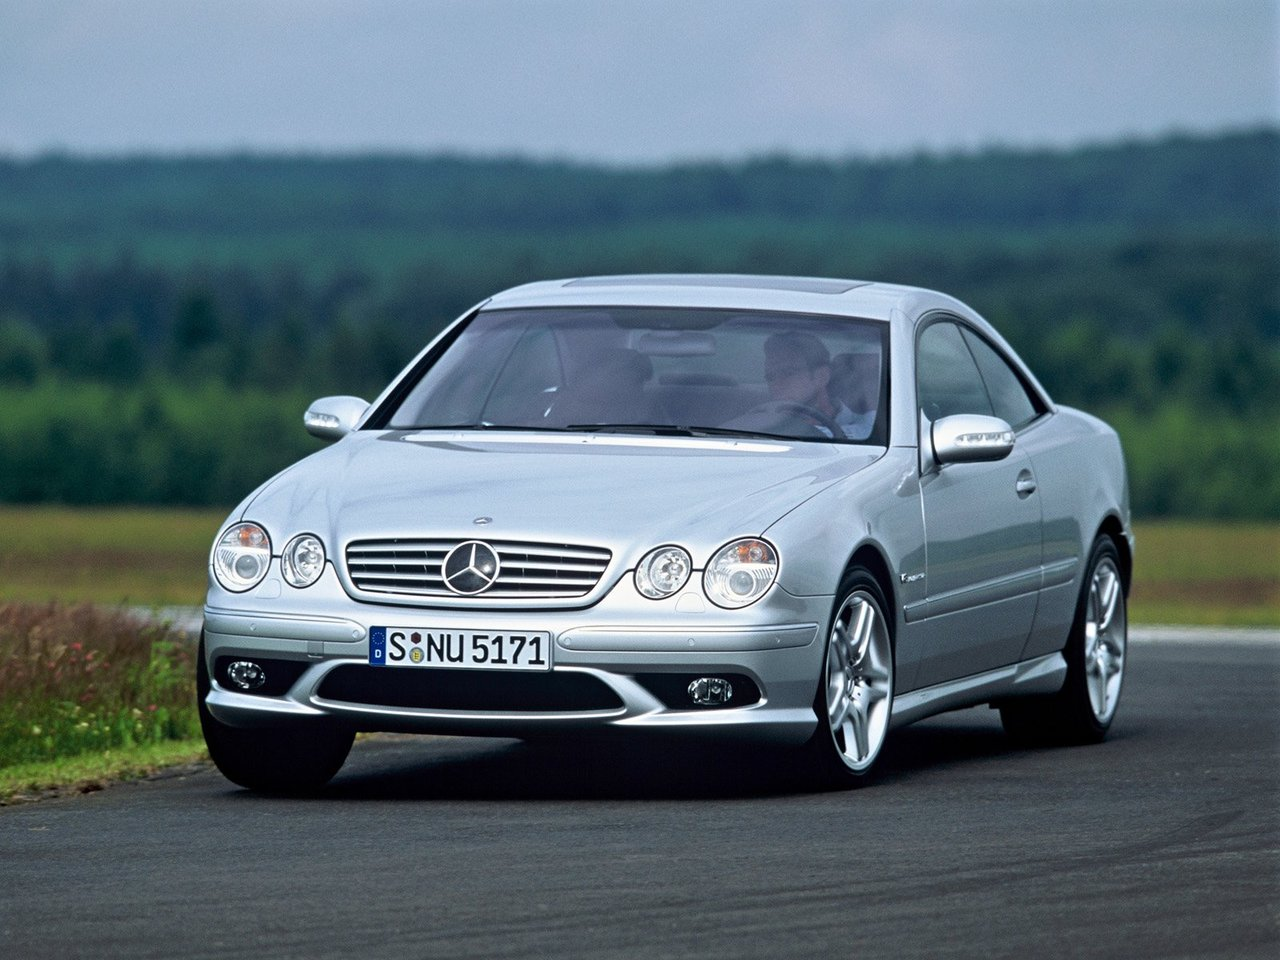 Автомобиль Mercedes-Benz CL-klasse AMG